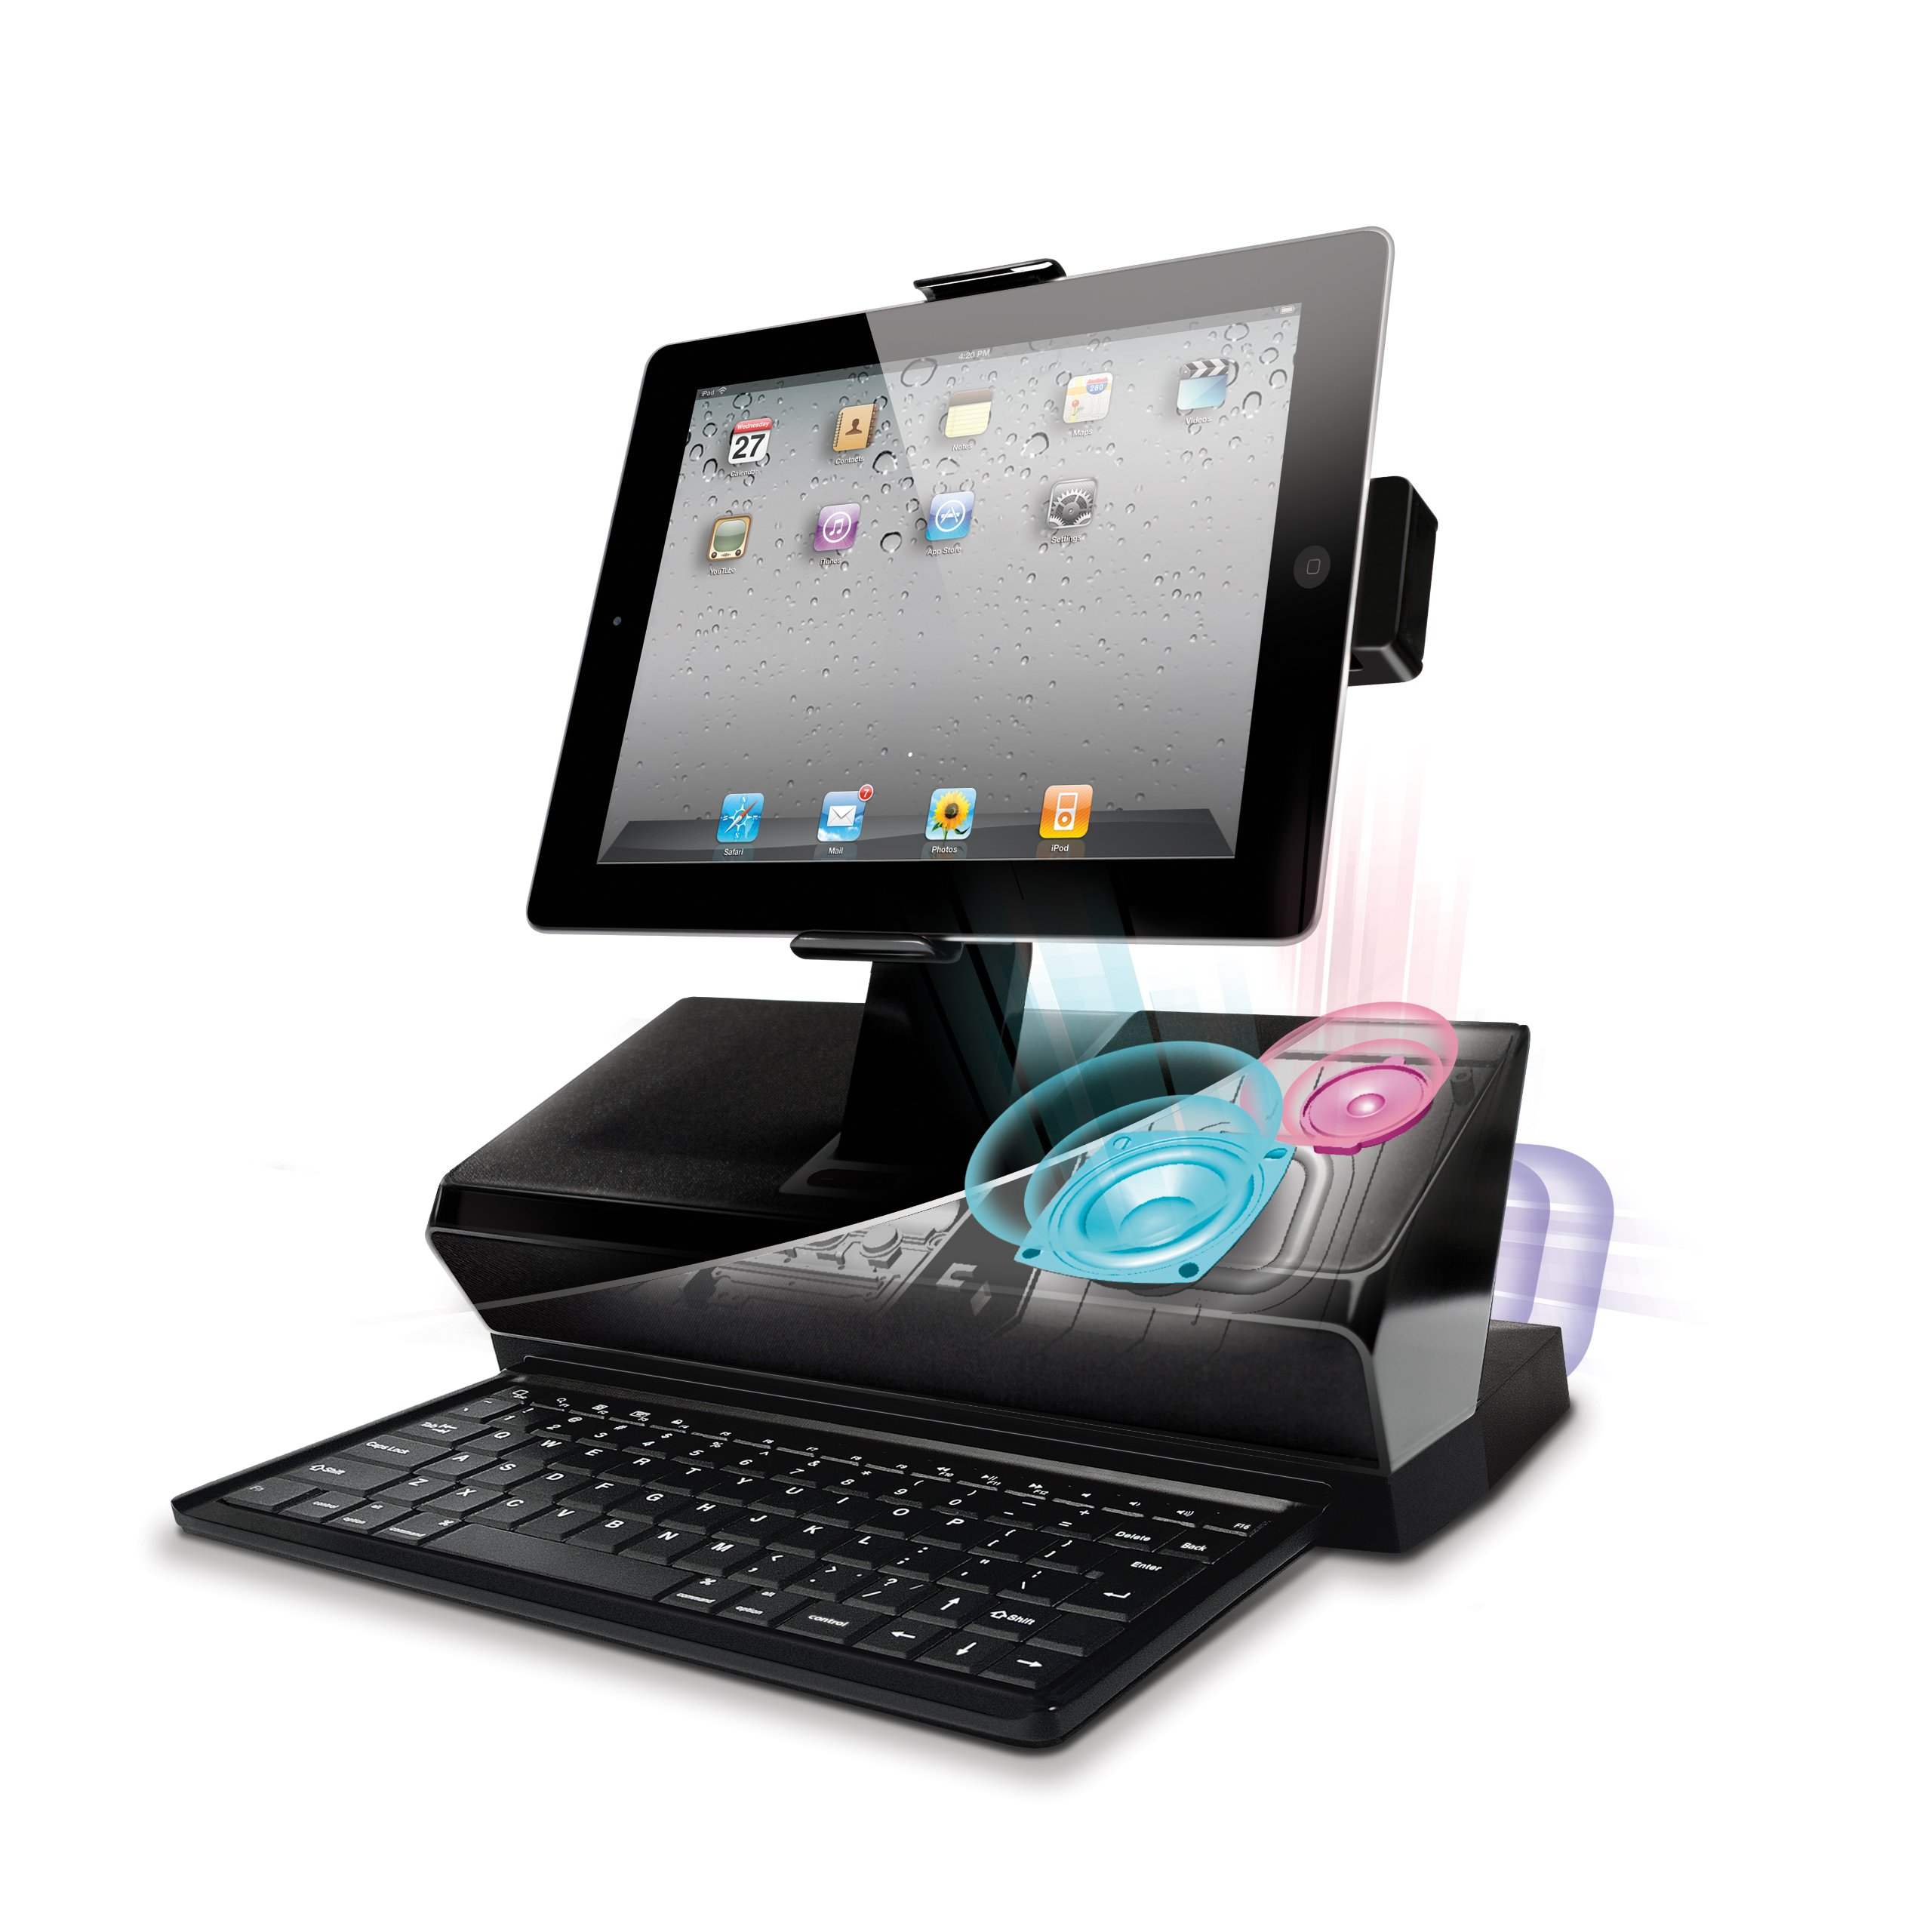 iLuv WorkStation Mobile Computing Station with Dock, Keyboard and Audio for Apple iPad, iPhone and iPod Touch (iMM737BLK) by iLuv